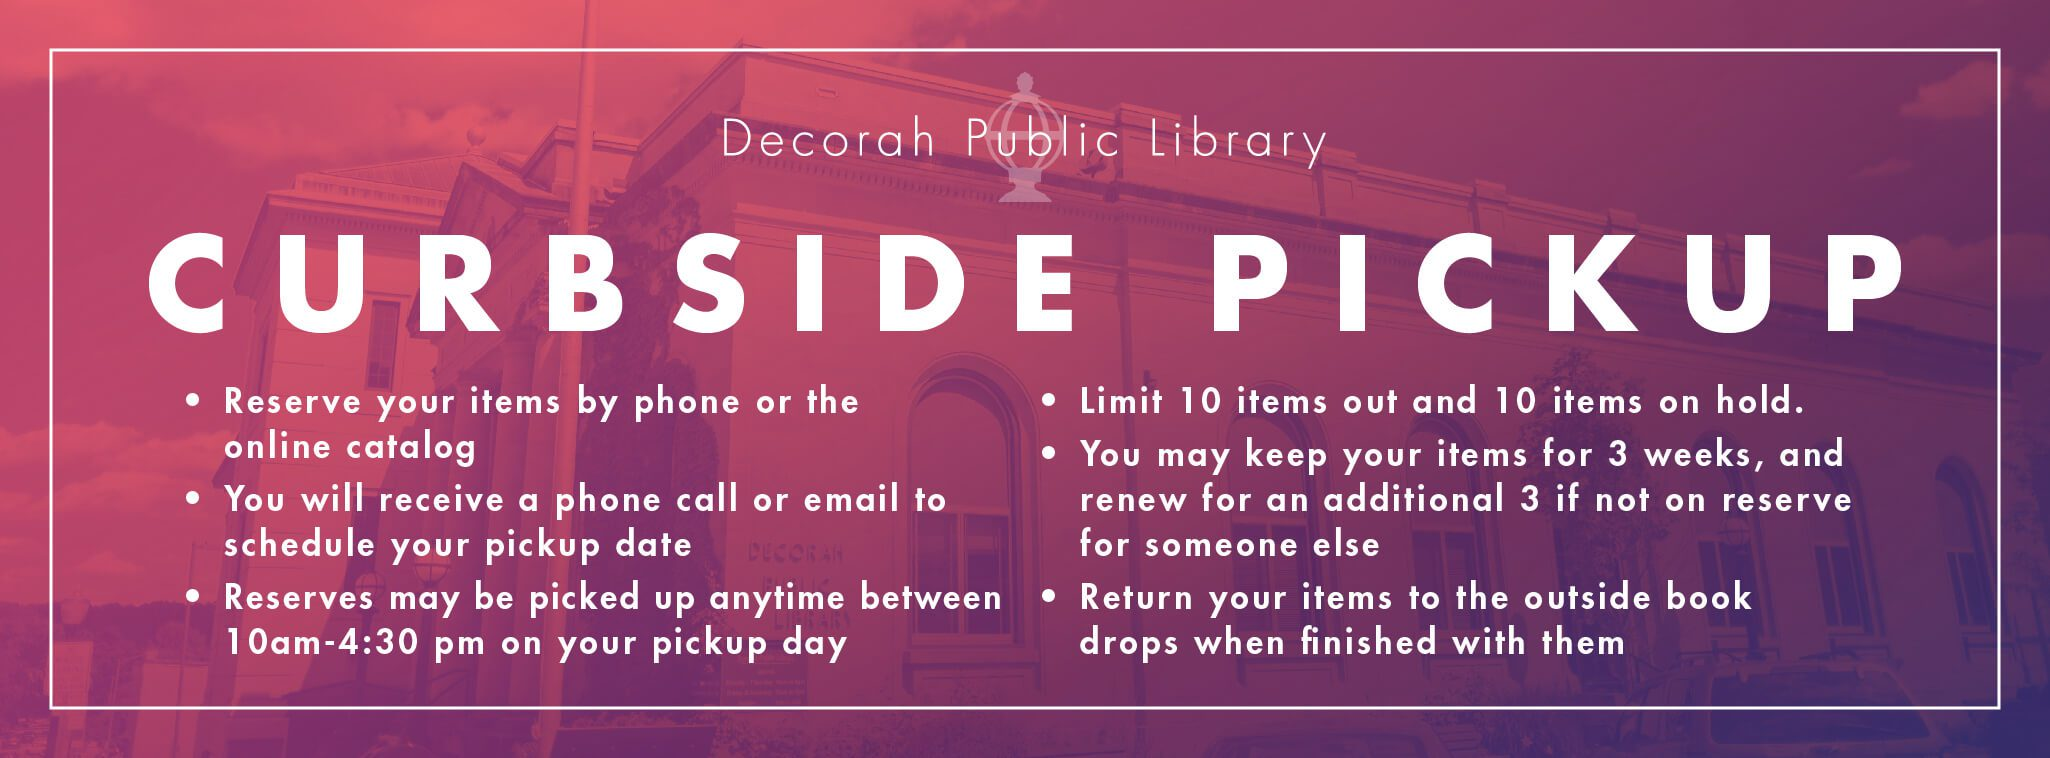 Curbside Pickup Information